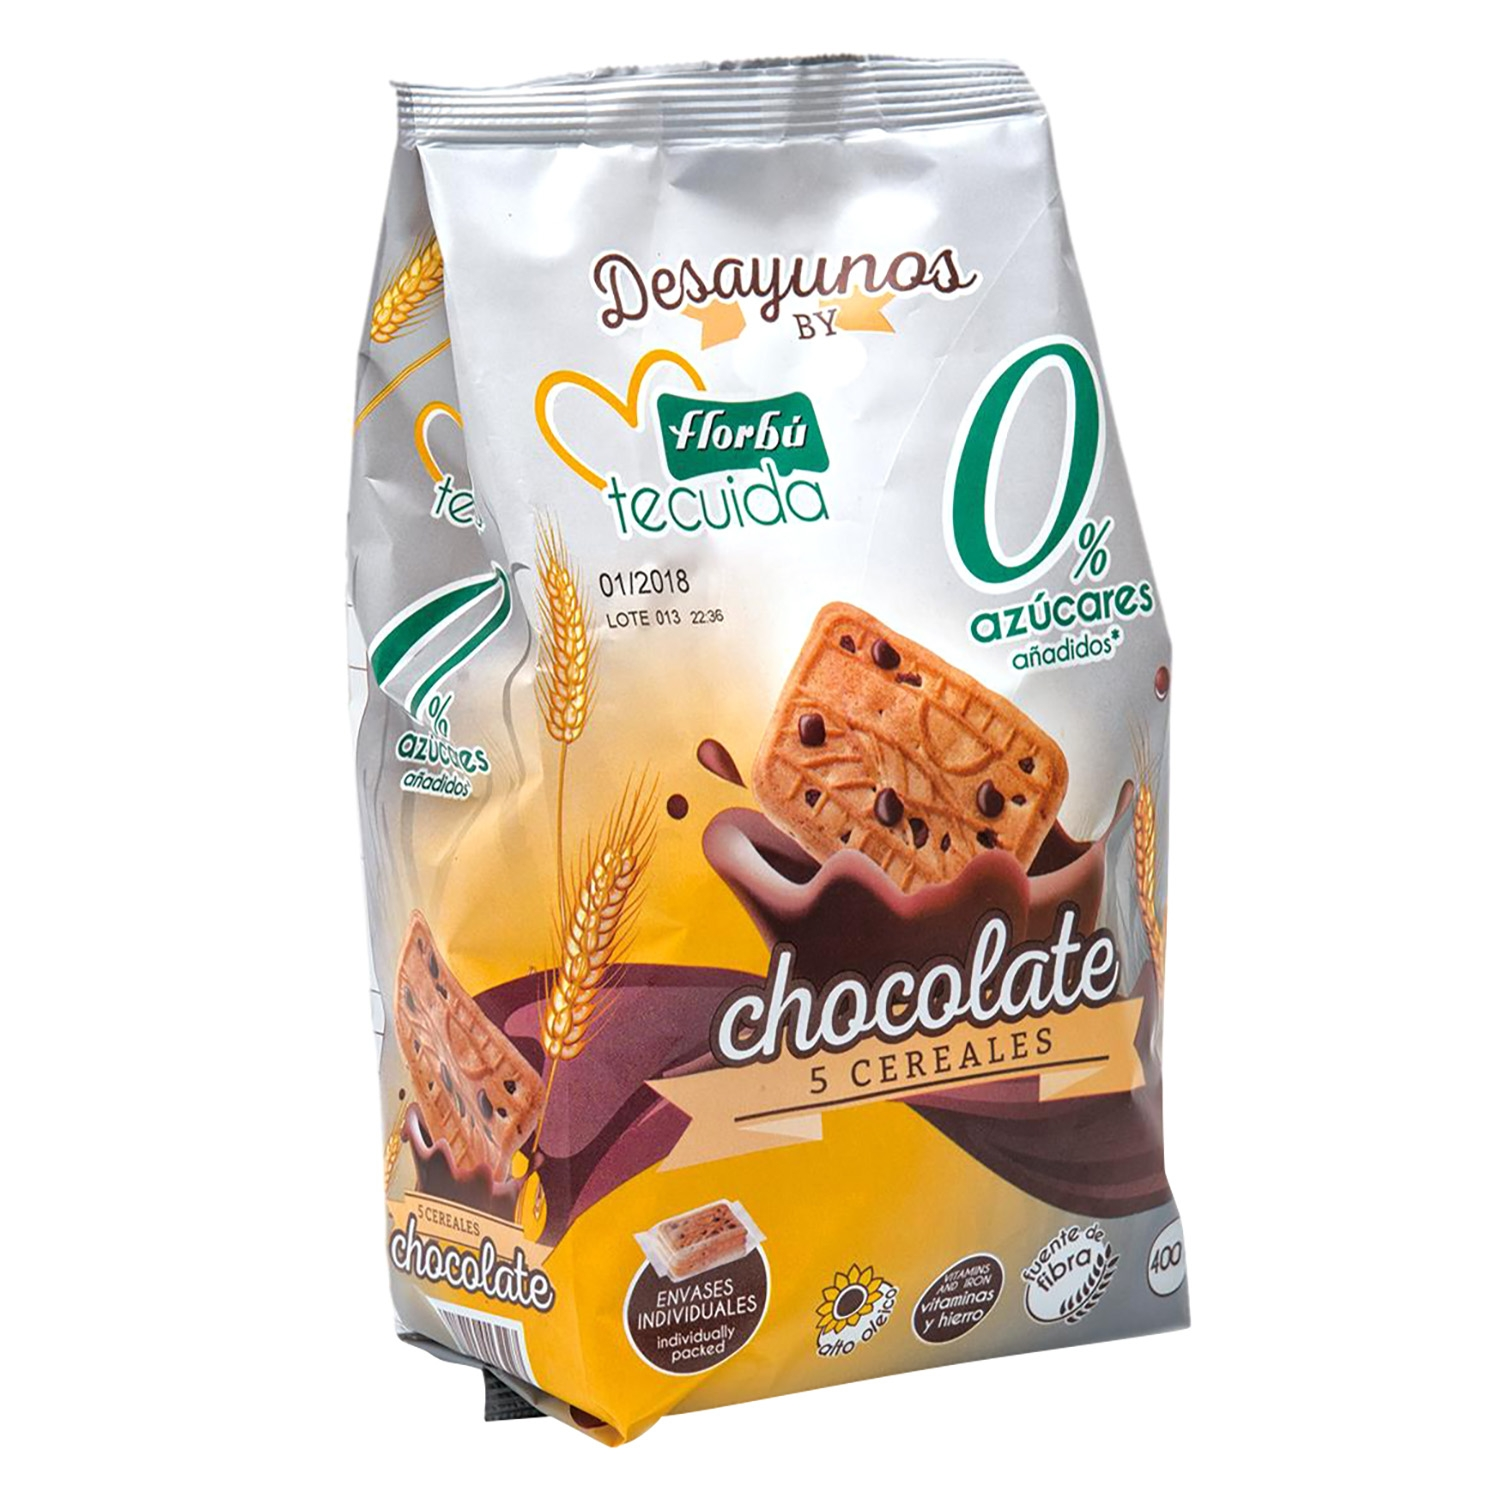 Galletas de chocolate 5 cereales